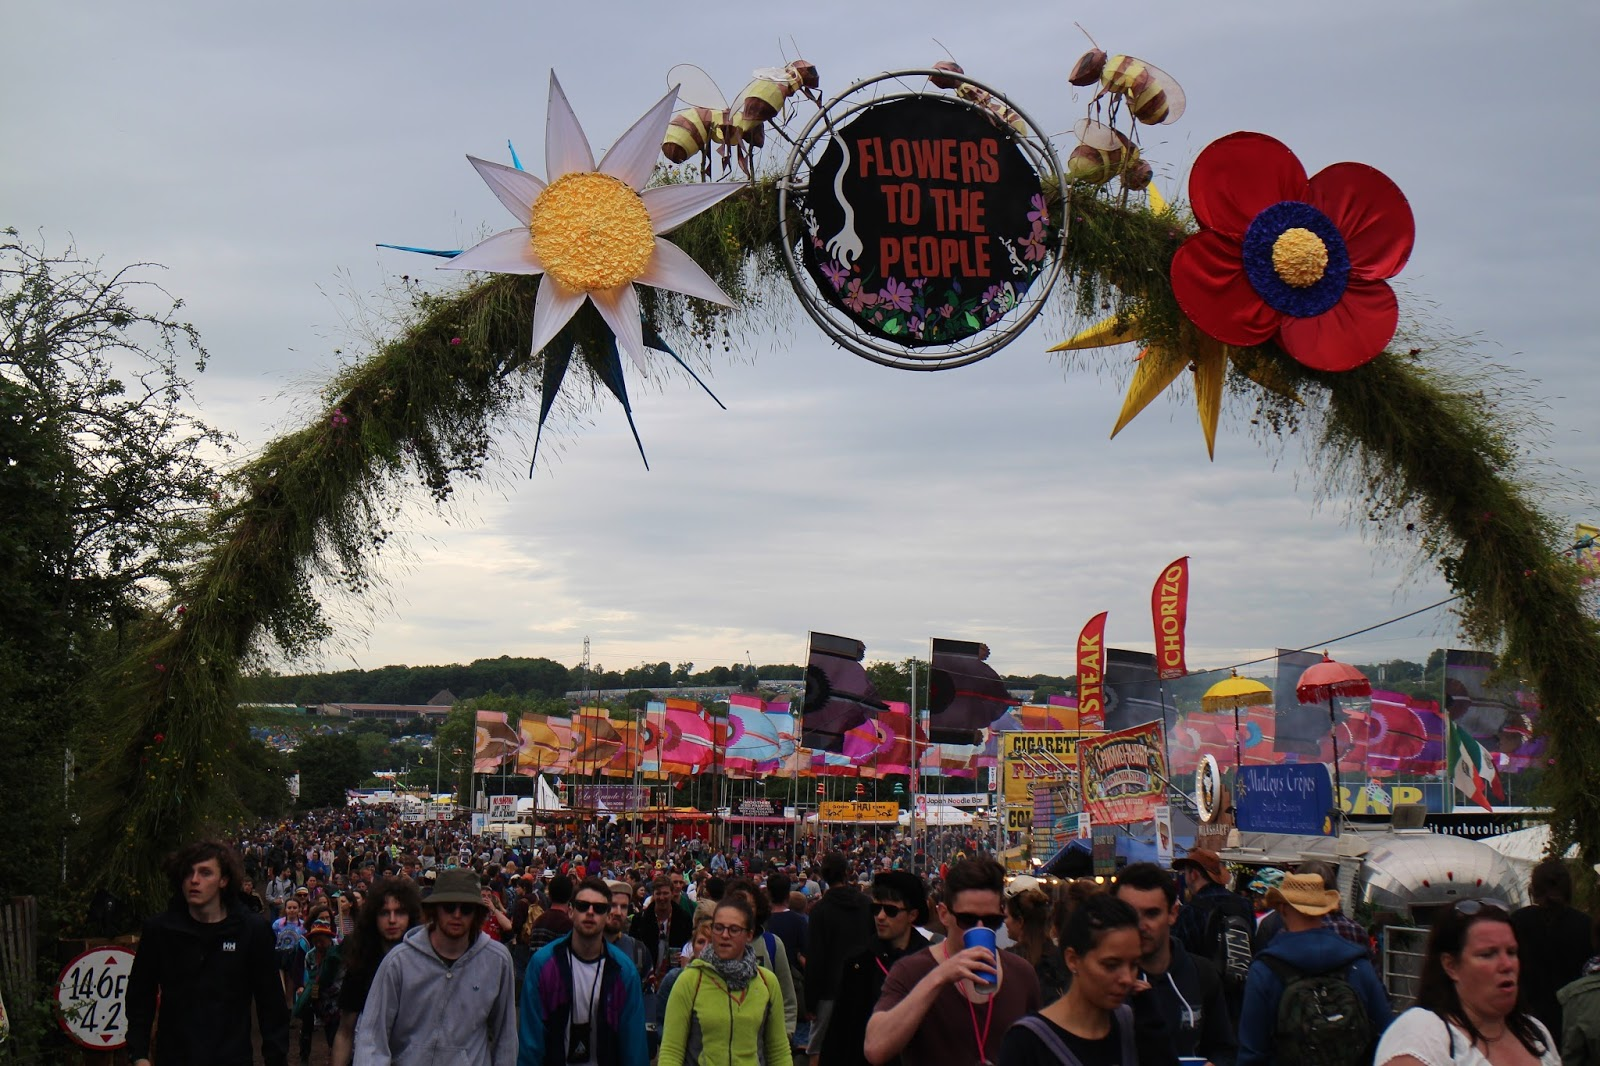 Glastonbury - Greenfields and Avalon 'Flowers to the People'